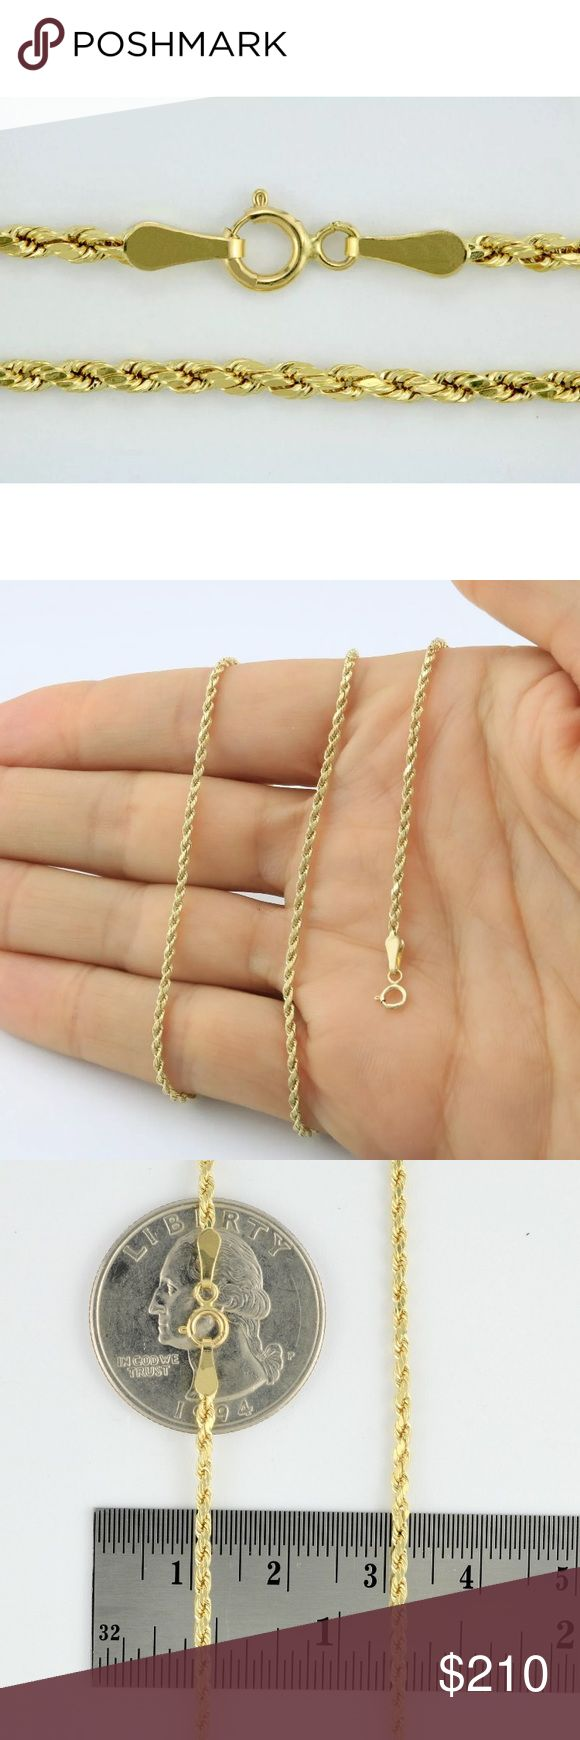 """SOLID GOLD Rope Chain 10K 18"""" Necklace Solid Gold Rope Chain made with Solid 10K Gold. This chain is 18"""" Long, stamped 10K for authenticity. This chain was made in Italy with expert craftmanship. Made with 100% Solid 10K Gold will never tarnish or fade. Accessories Jewelry"""